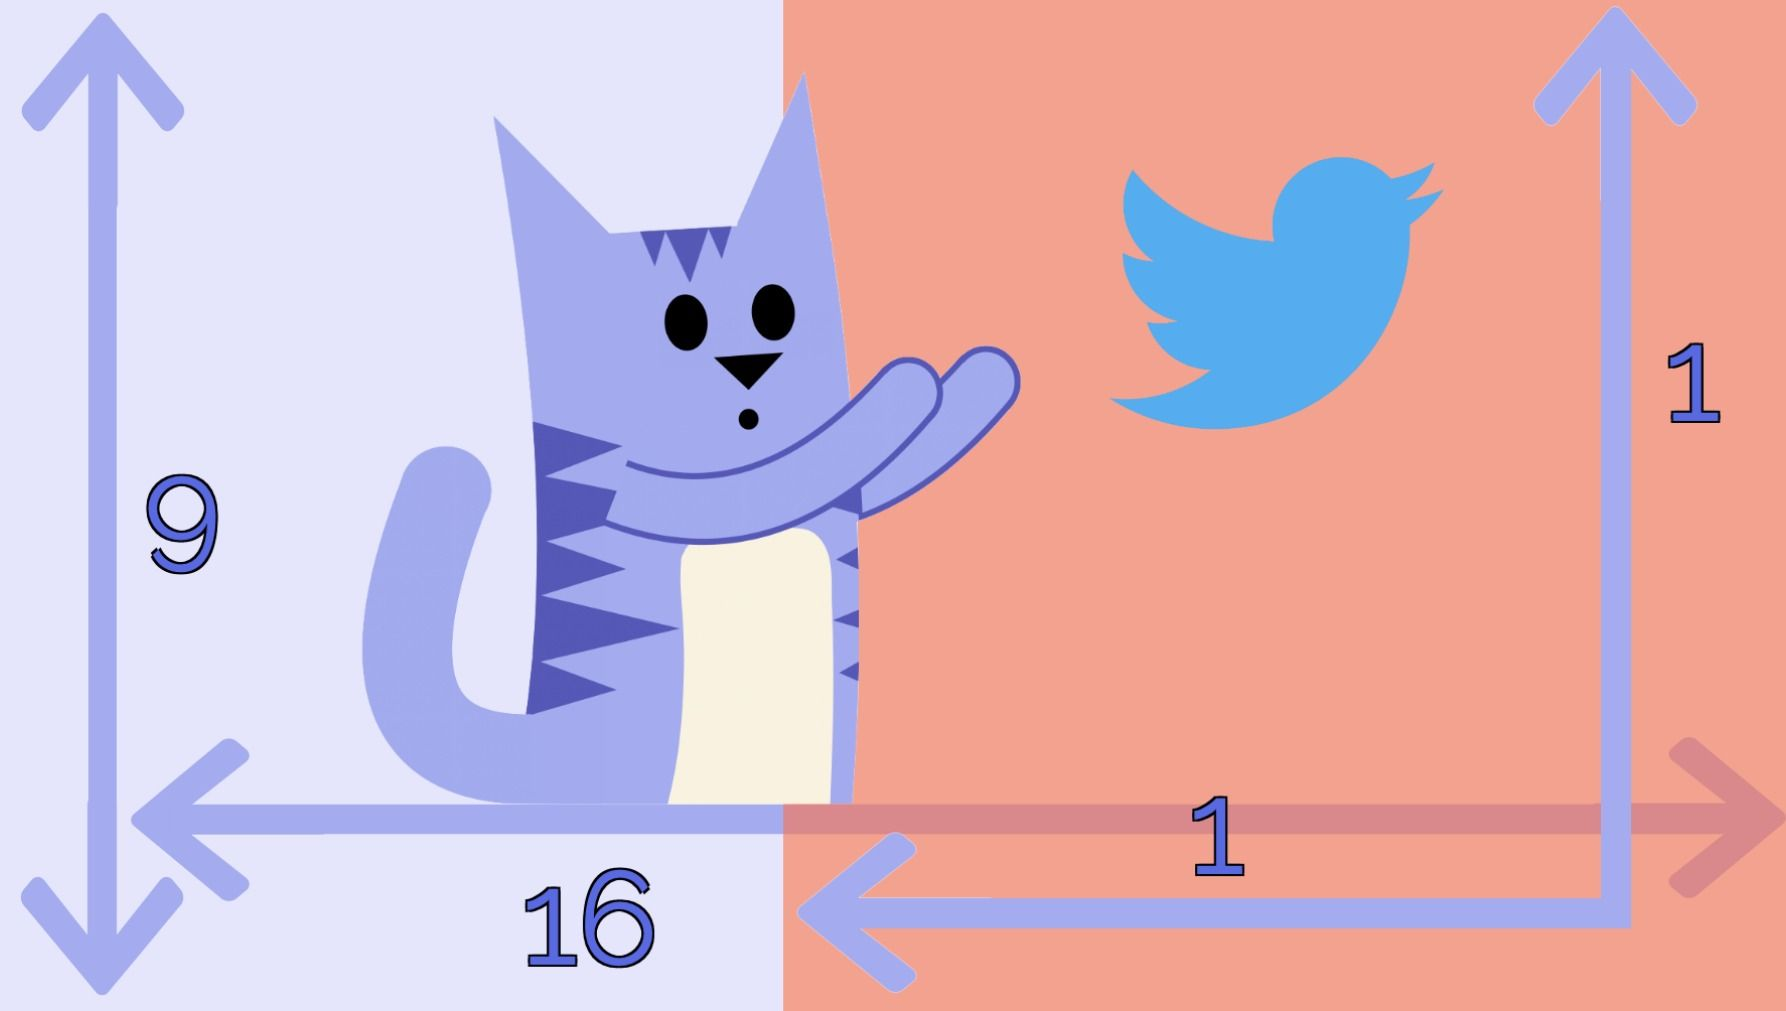 A graphic showing the recommended dimensions for Twitter content.